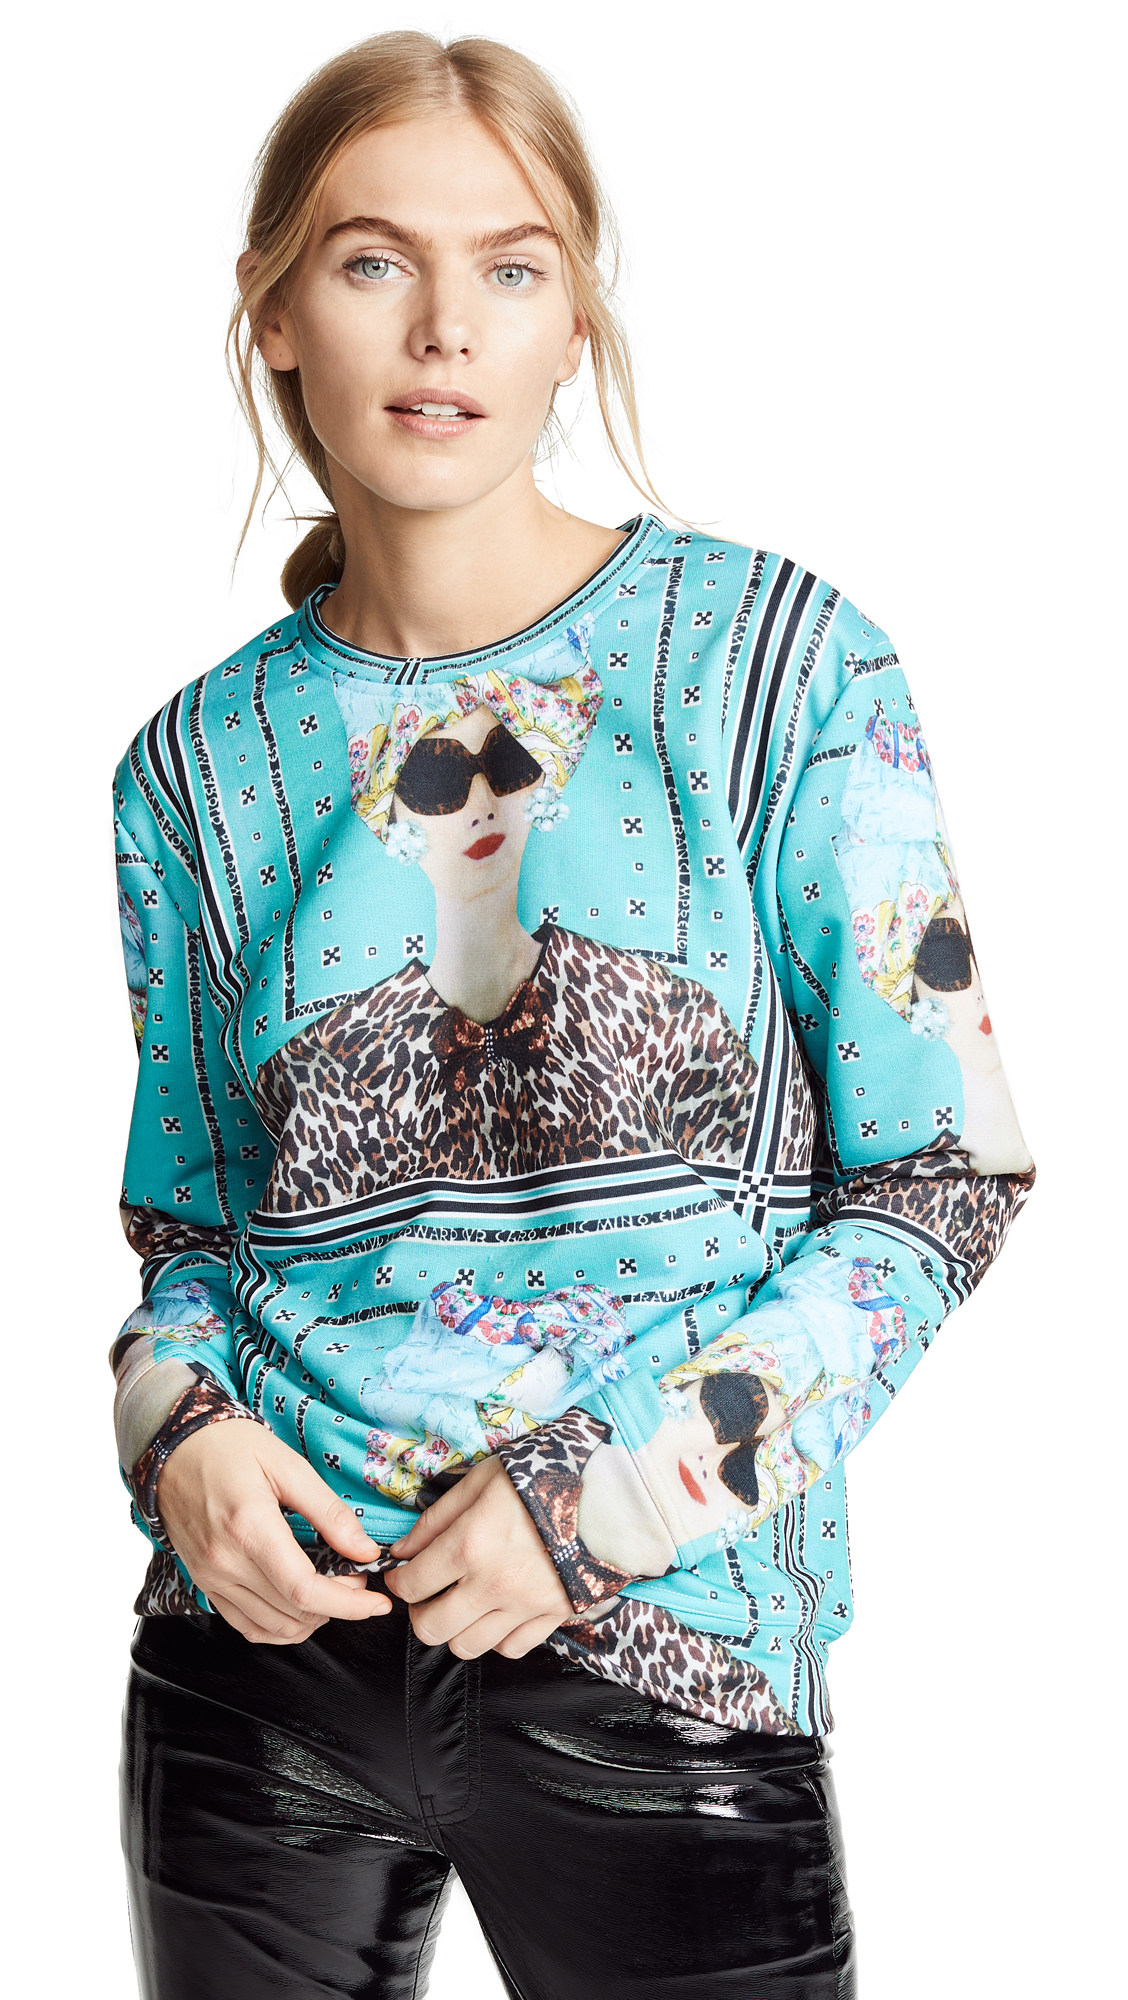 Tata Naka Babe Goes to Capri Sweatshirt In Blue Multi